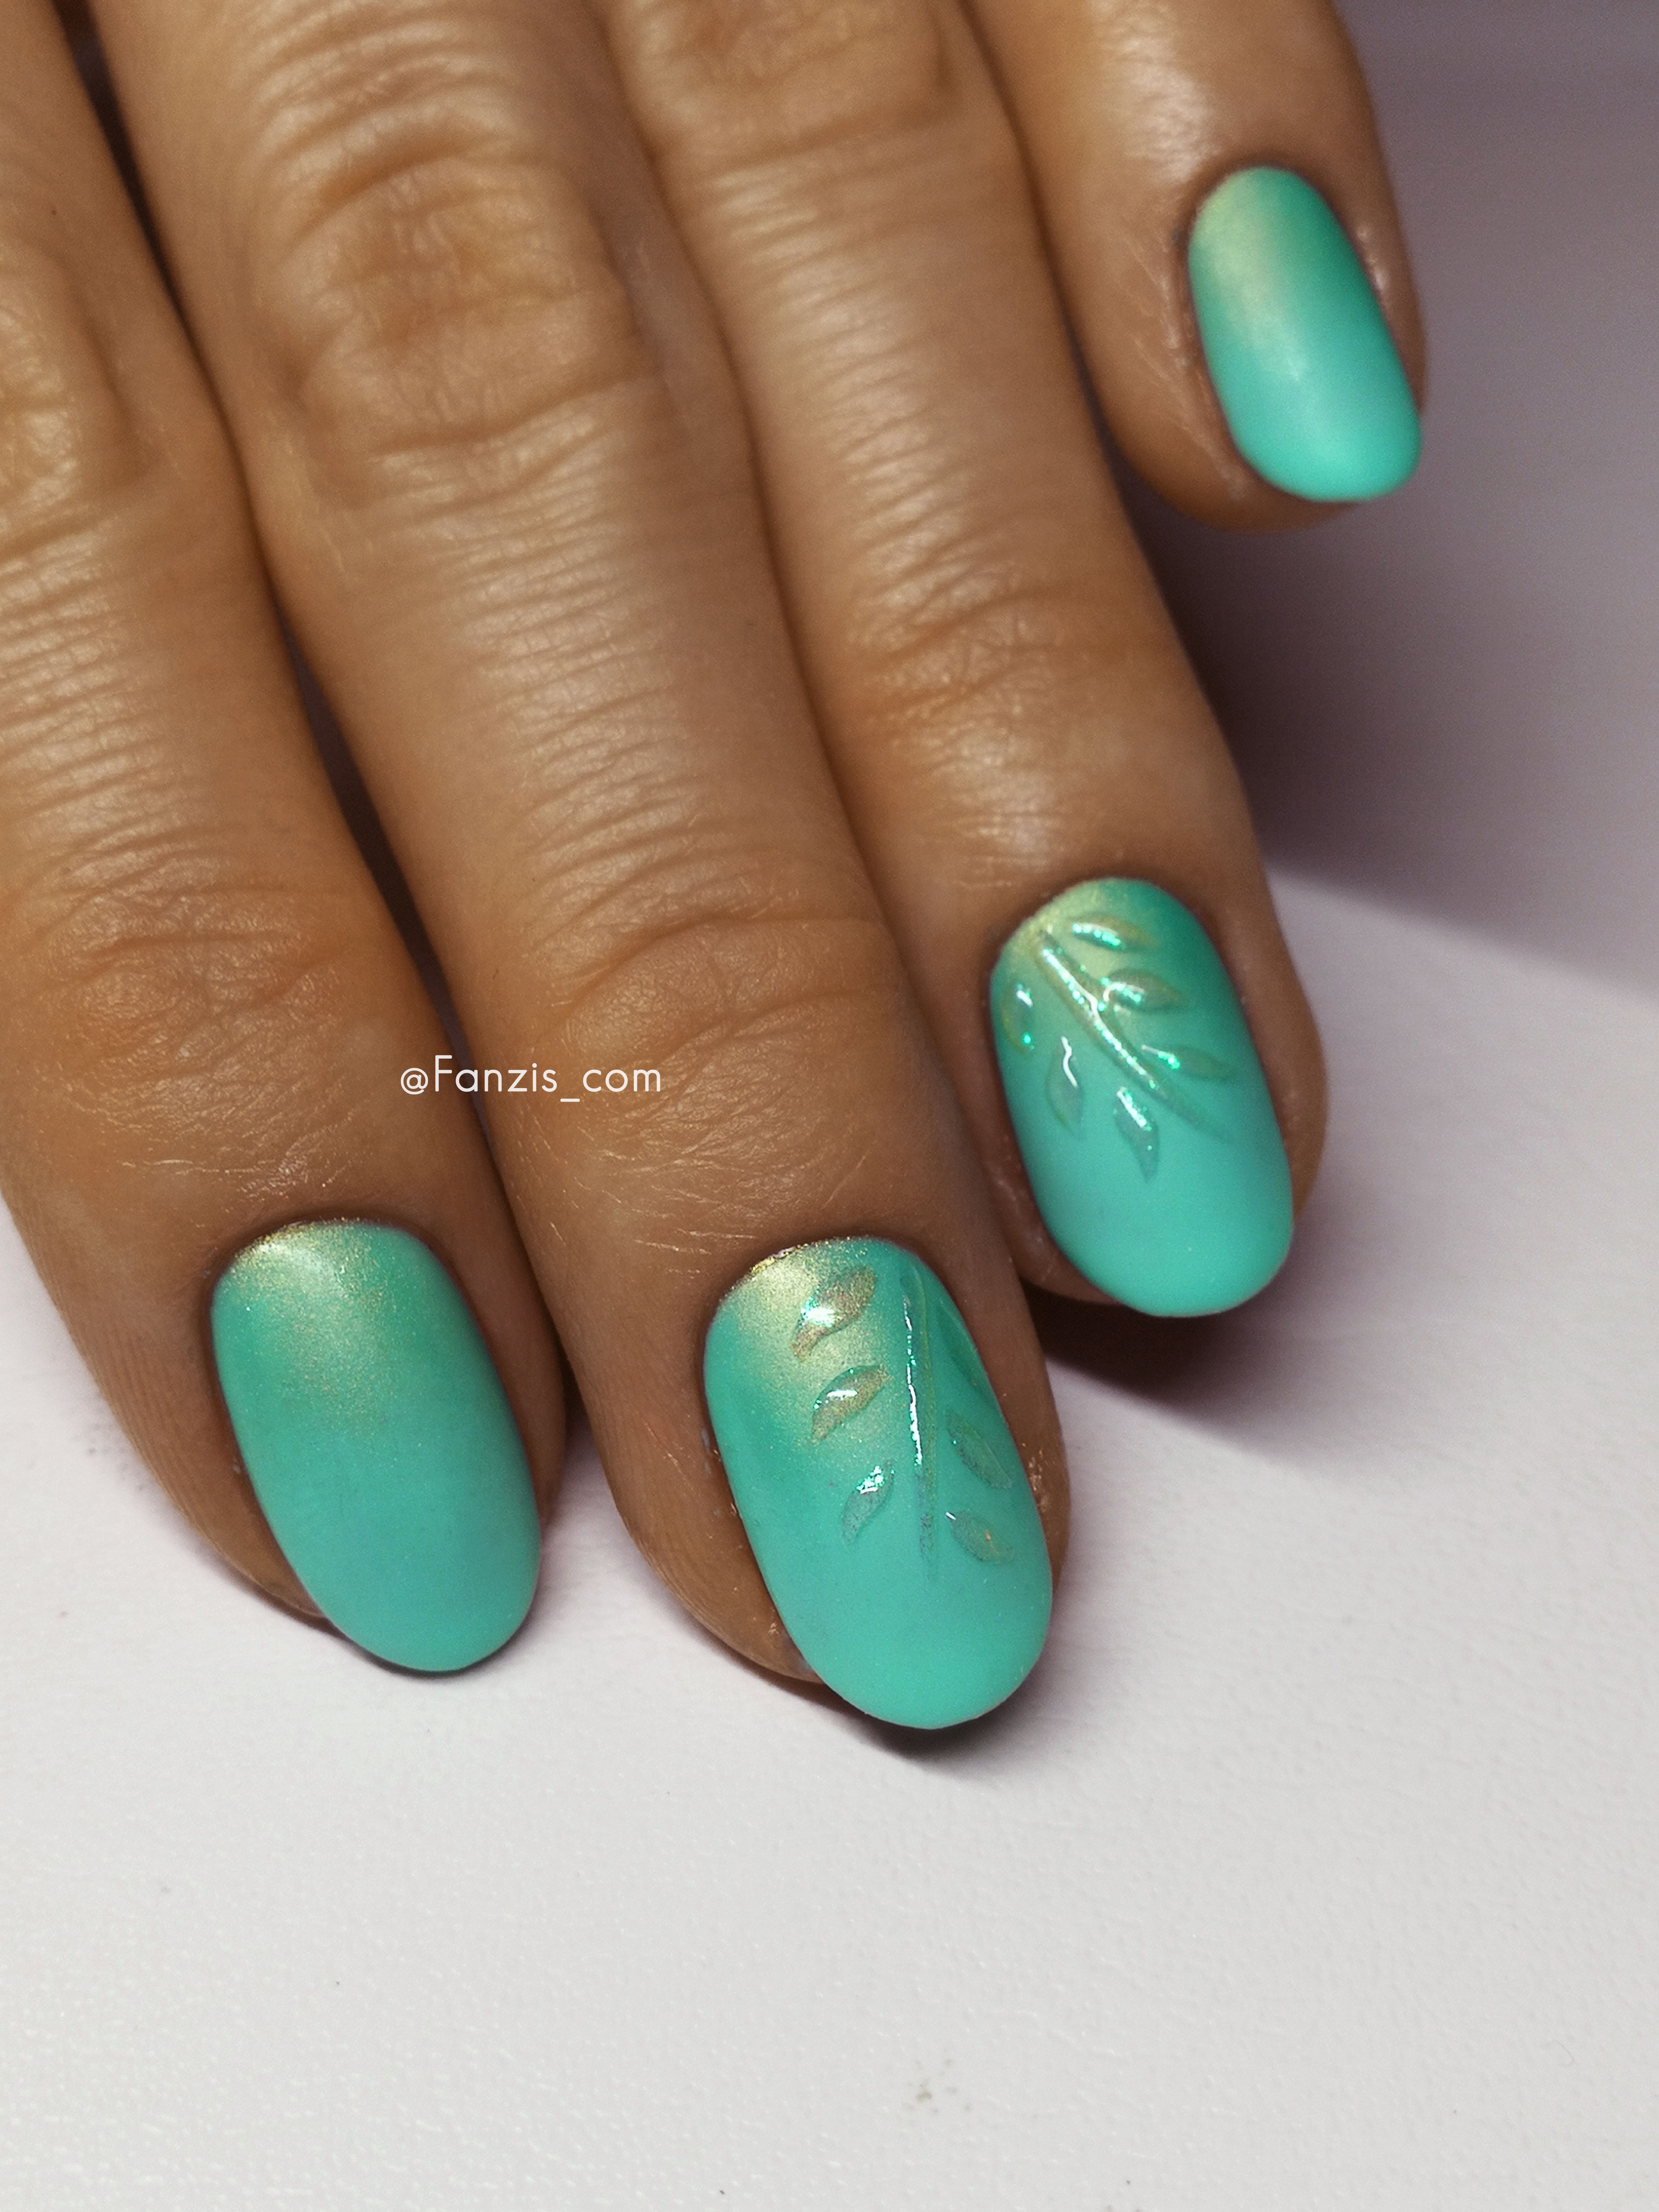 Semilac 22 mint, turquoise blue nails